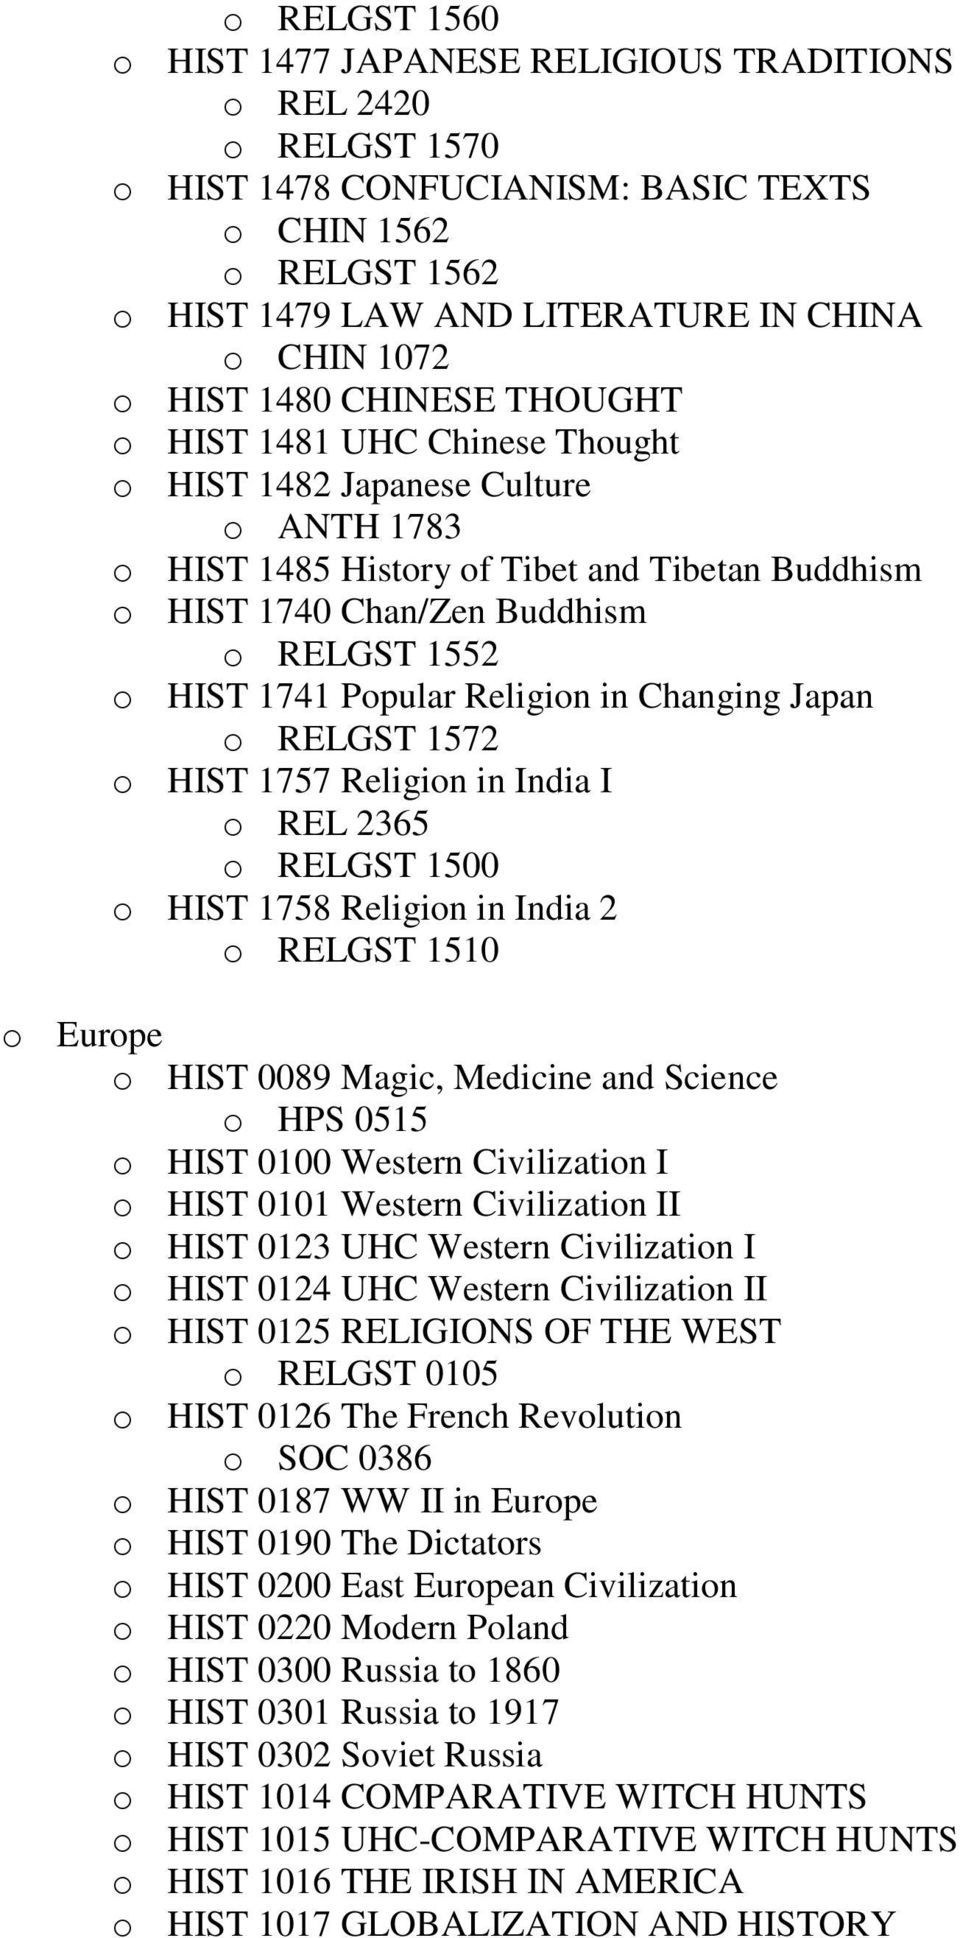 1741 Popular Religion in Changing Japan o RELGST 1572 o HIST 1757 Religion in India I o REL 2365 o RELGST 1500 o HIST 1758 Religion in India 2 o RELGST 1510 o Europe o HIST 0089 Magic, Medicine and